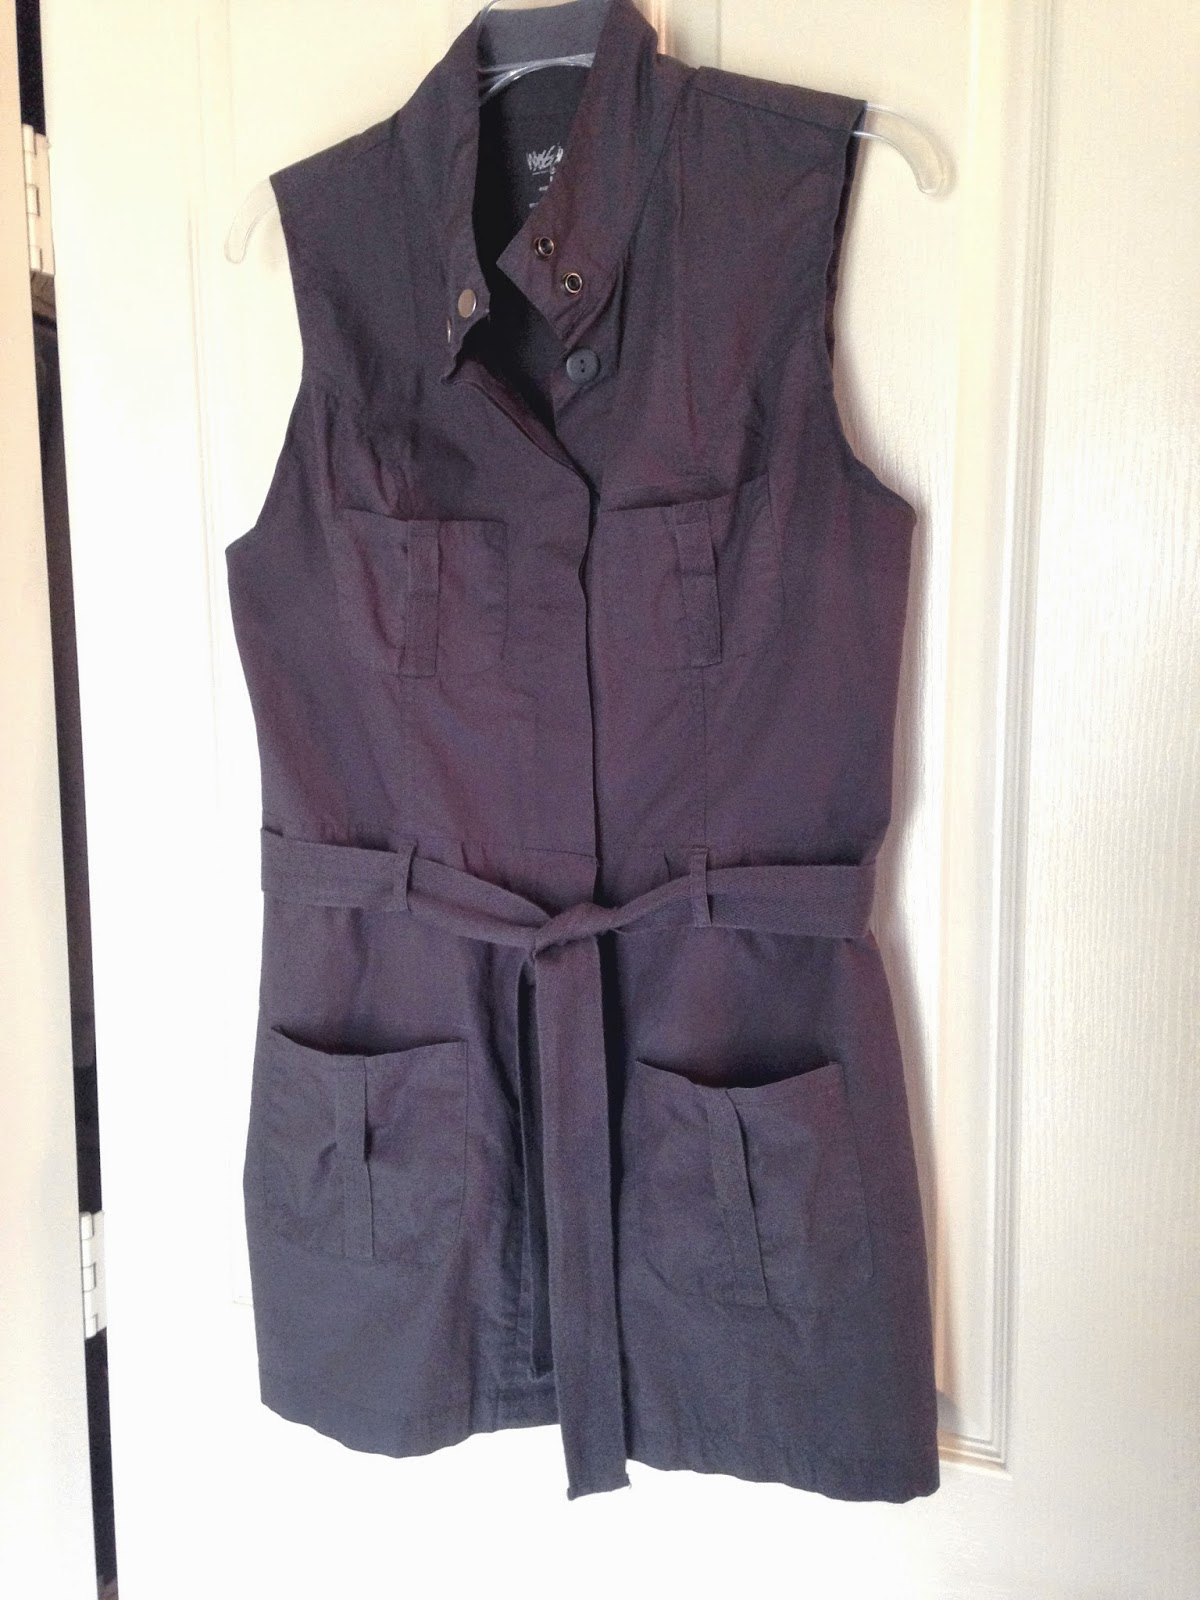 Ulterior Alterations: Refashioned Utility Vest Closed